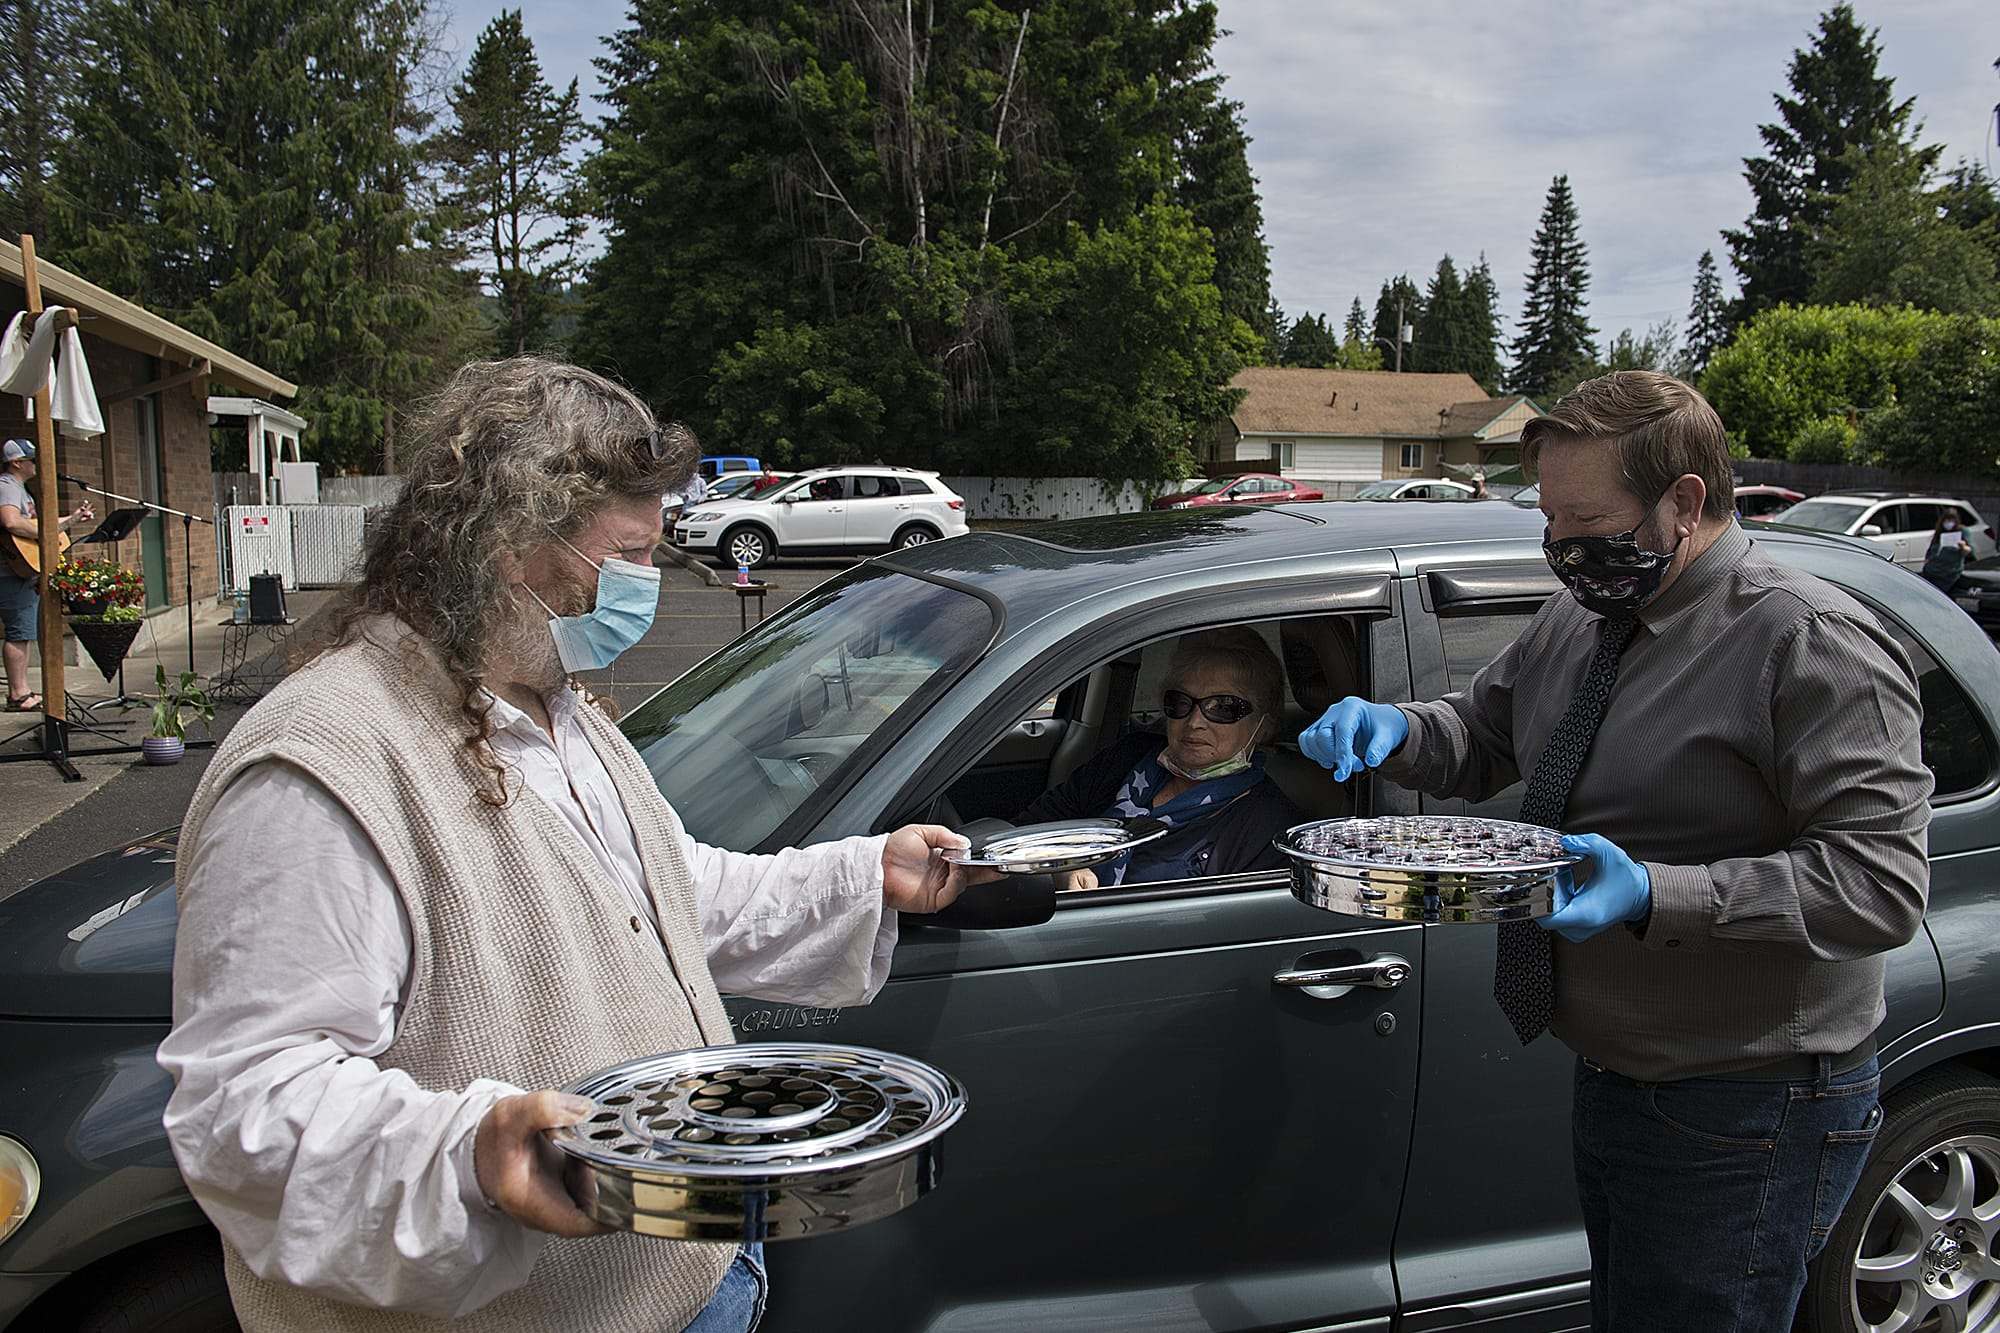 Charlie Raetz, left, a longtime member of St. Matthew Lutheran Church in Washougal, offers communion to Camas resident Tanya Fritz with the help of Pastor Robert Barber on Sunday morning, May 24, 2020. St. Matthew Lutheran Church, a small church in Washougal, offered its first drive-in church service that also included music, a message and cookies to-go for those in attendance. (Amanda Cowan/The Columbian)